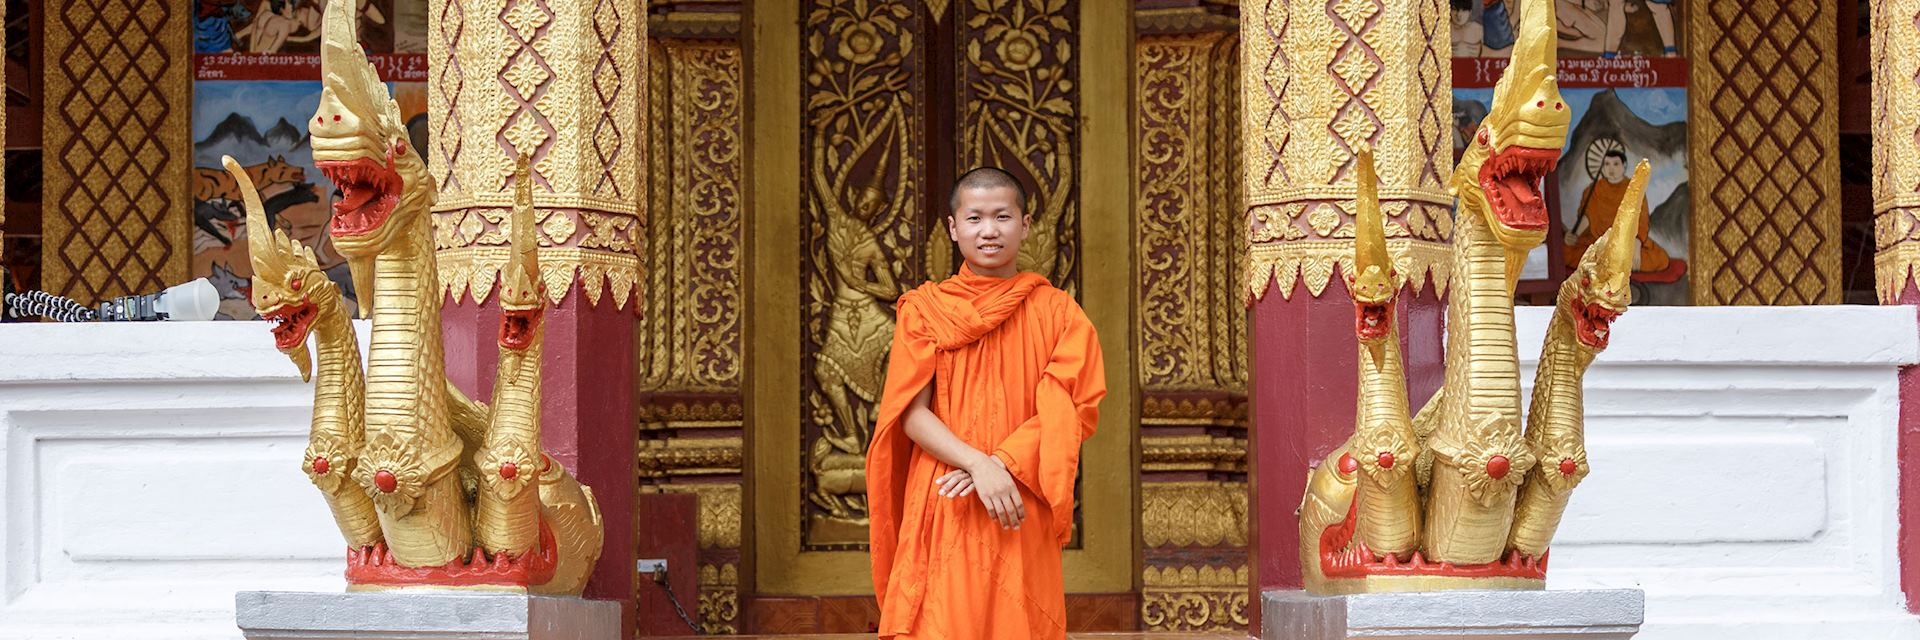 Buddhist monk in font of a monastery, Laos